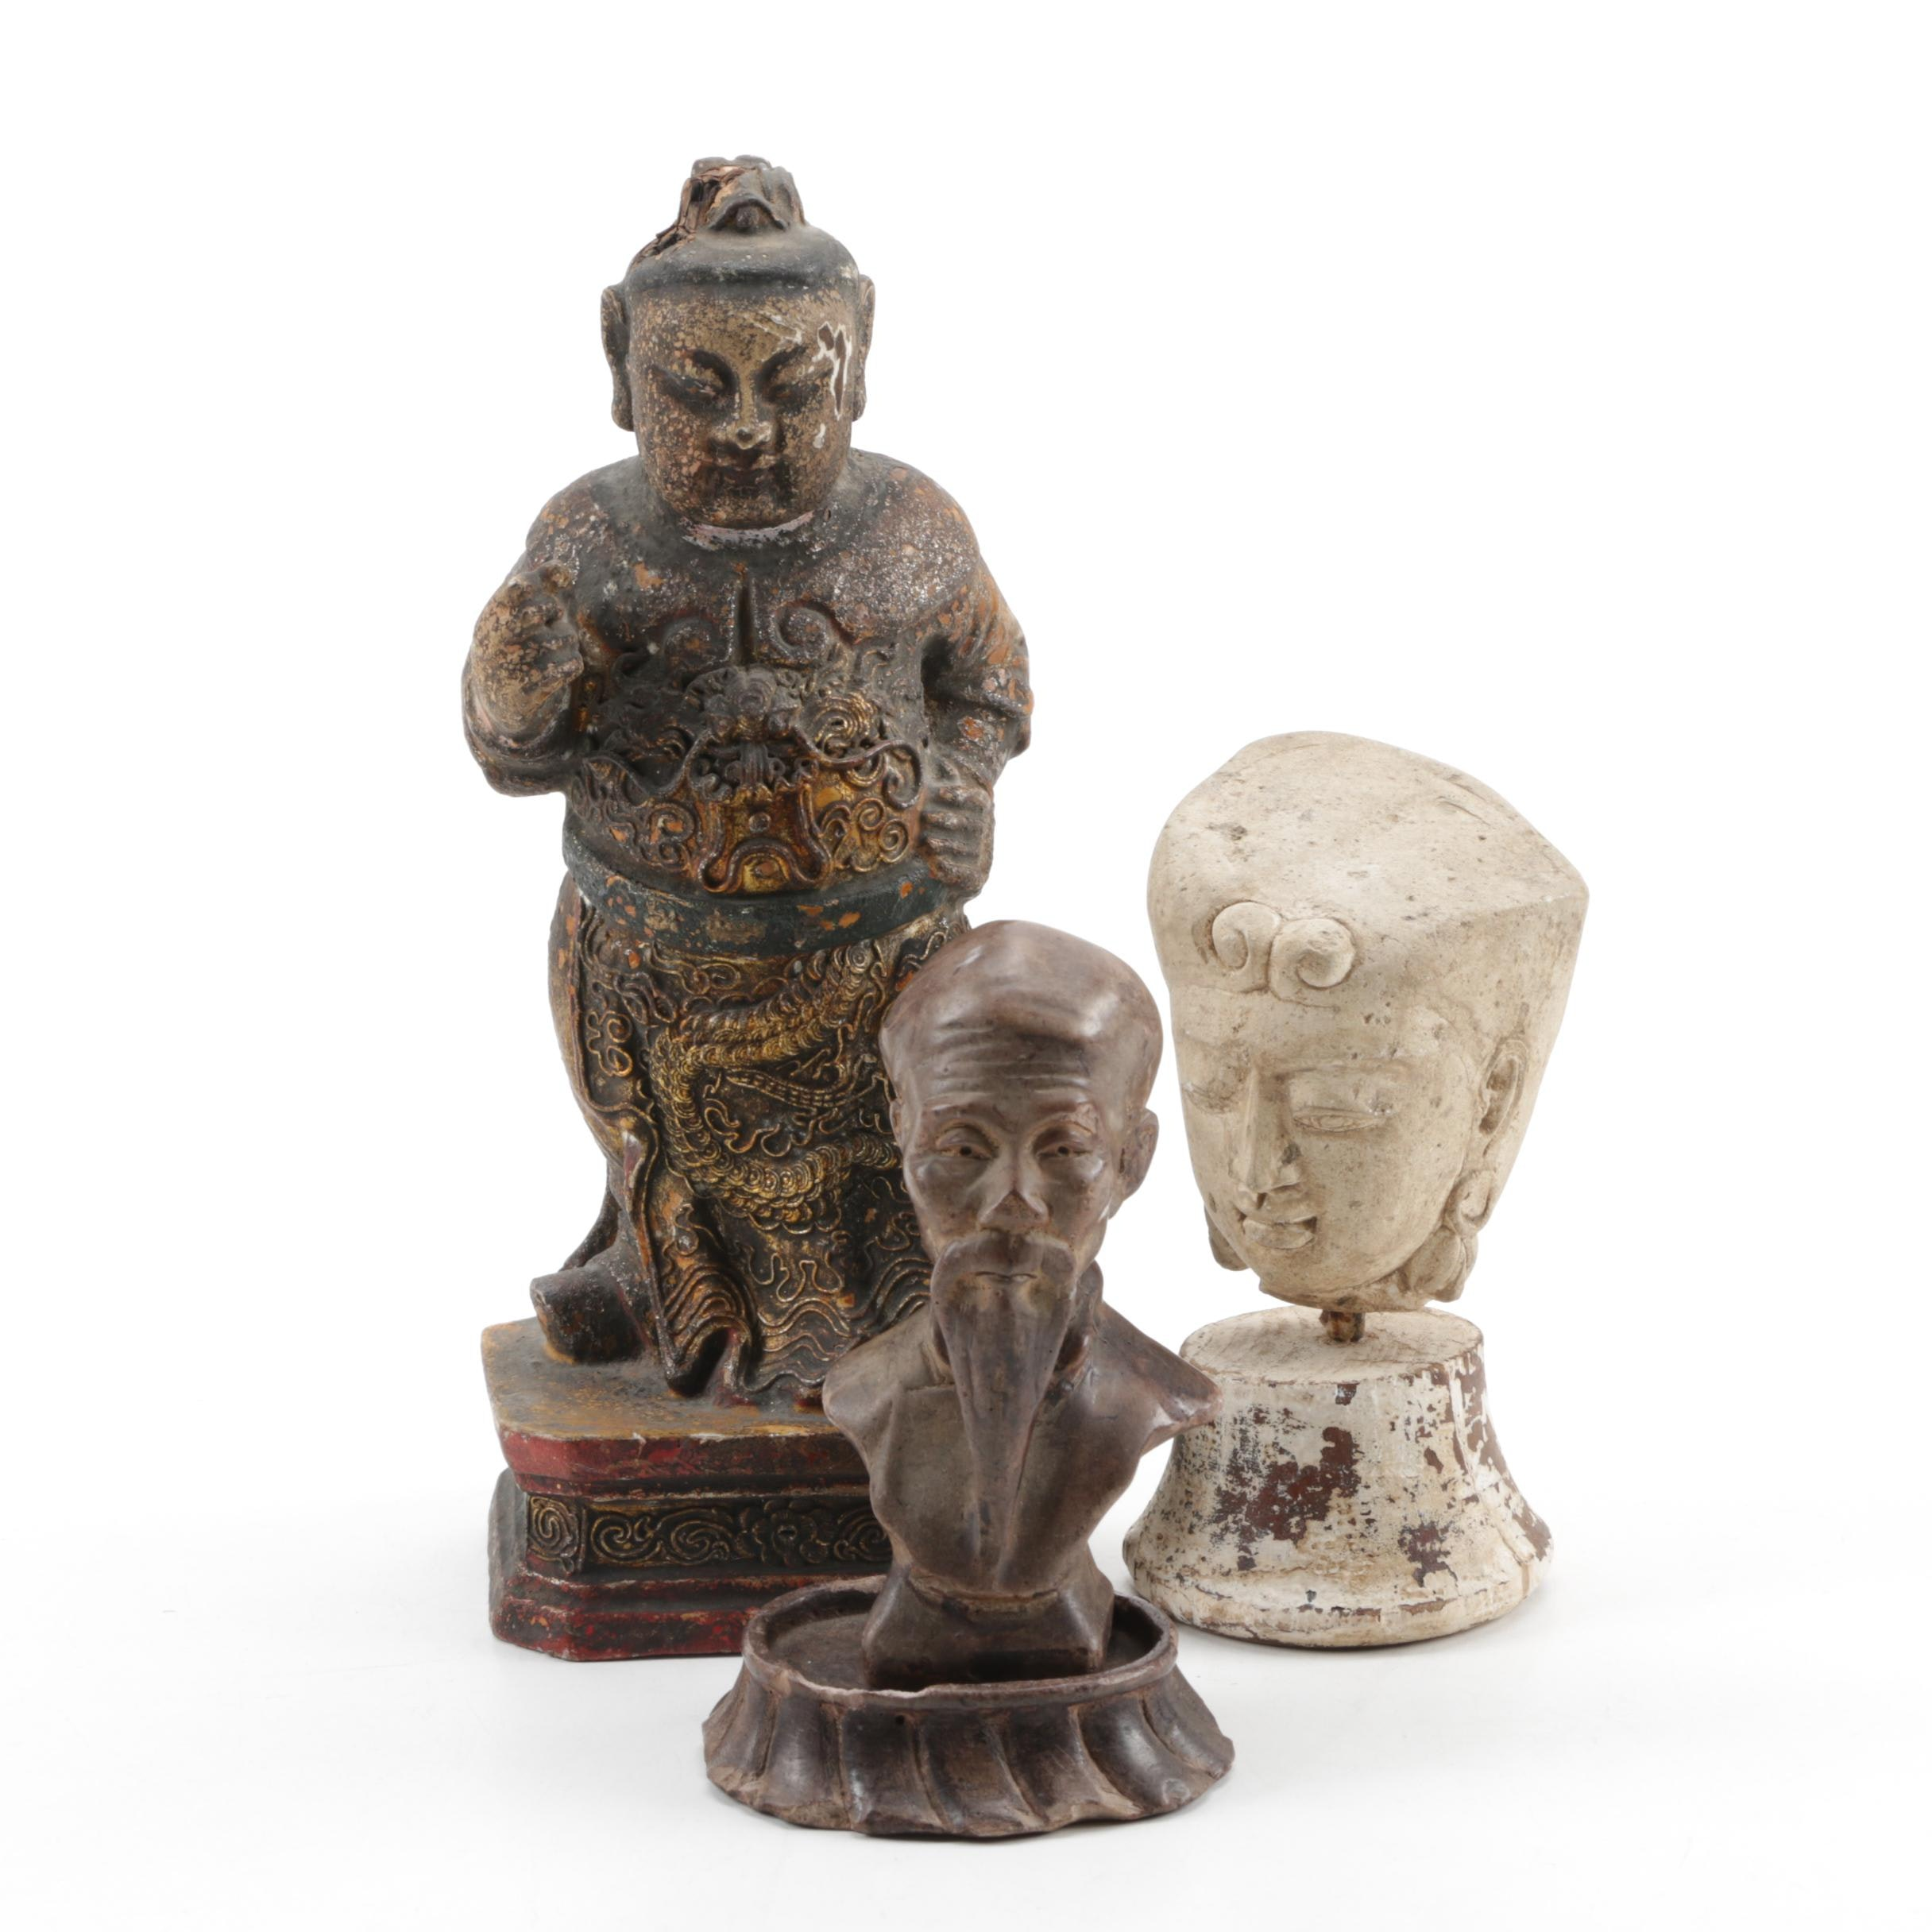 Asian Inspired Sculptures and Busts